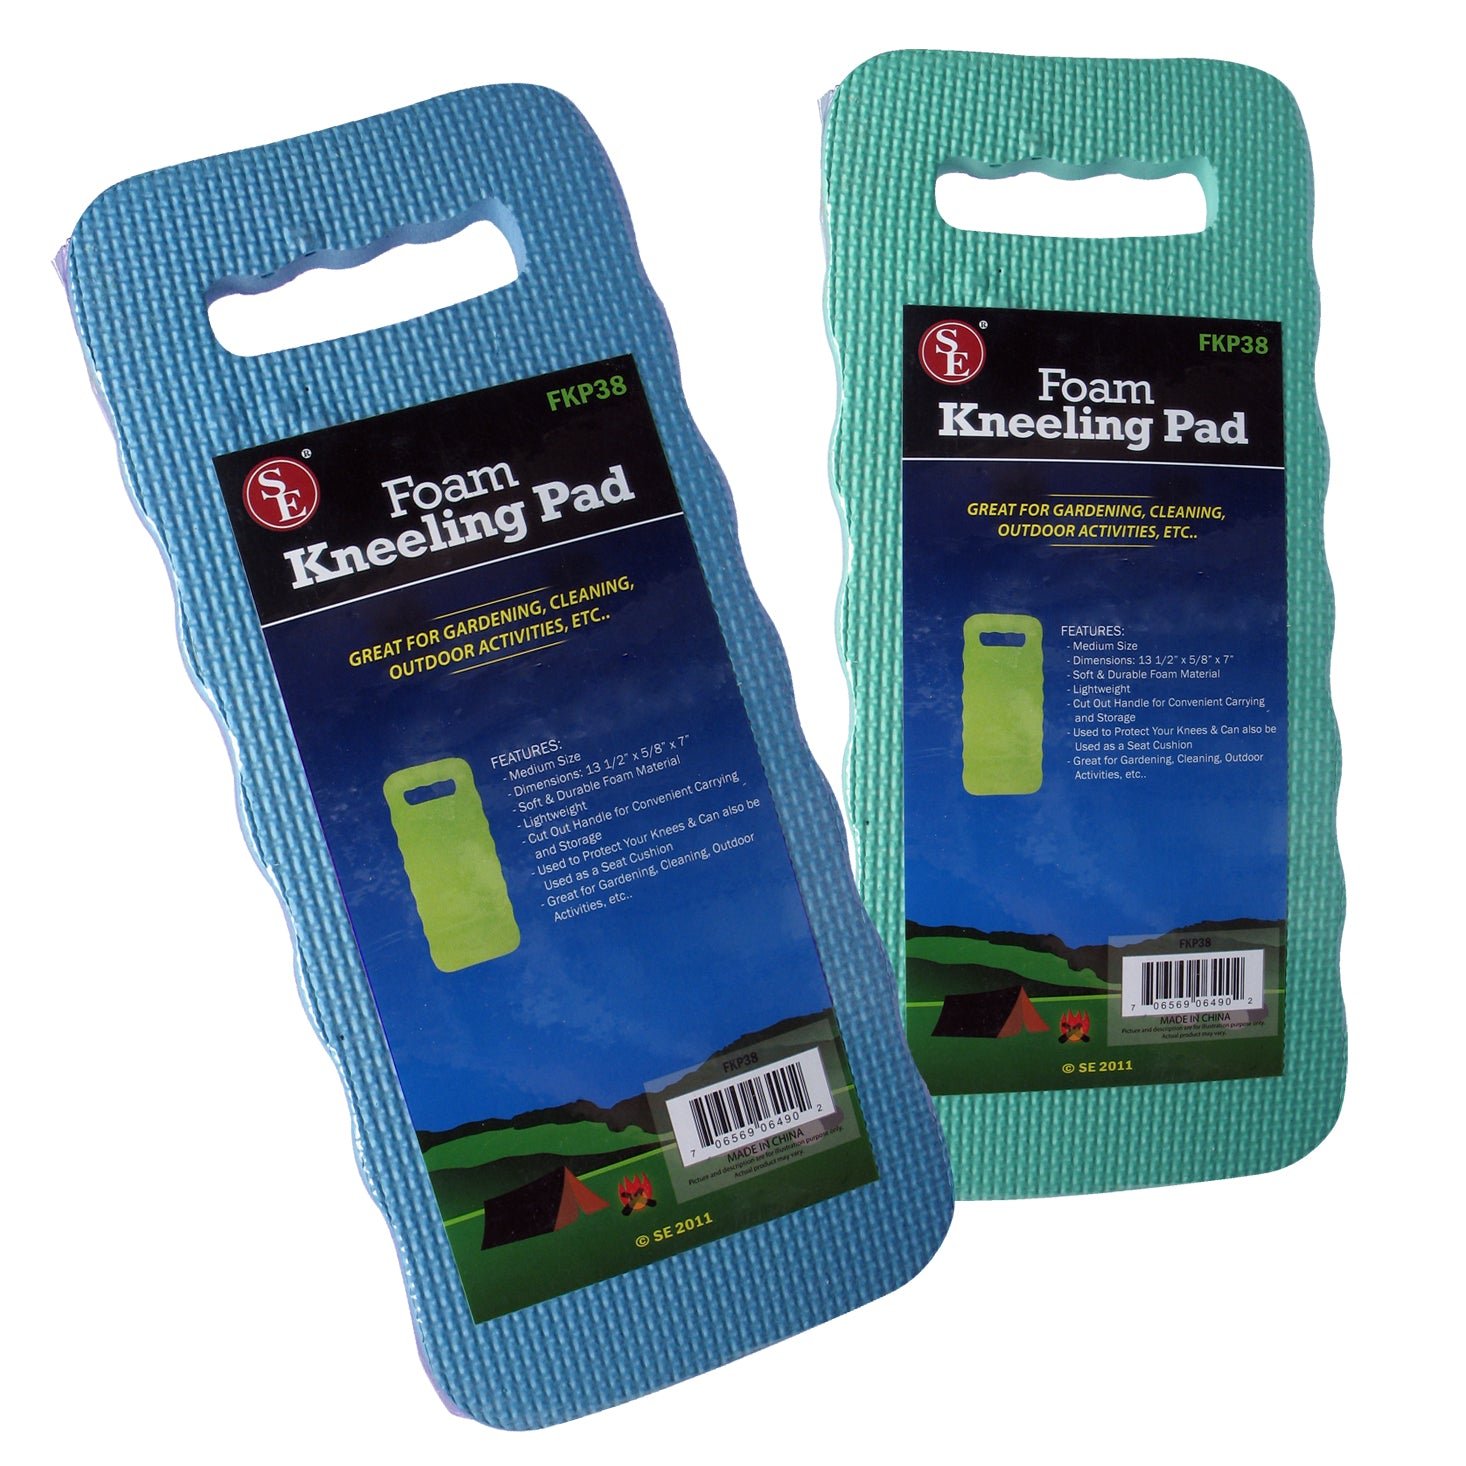 Foam Kneeling Pad  (1 pc)